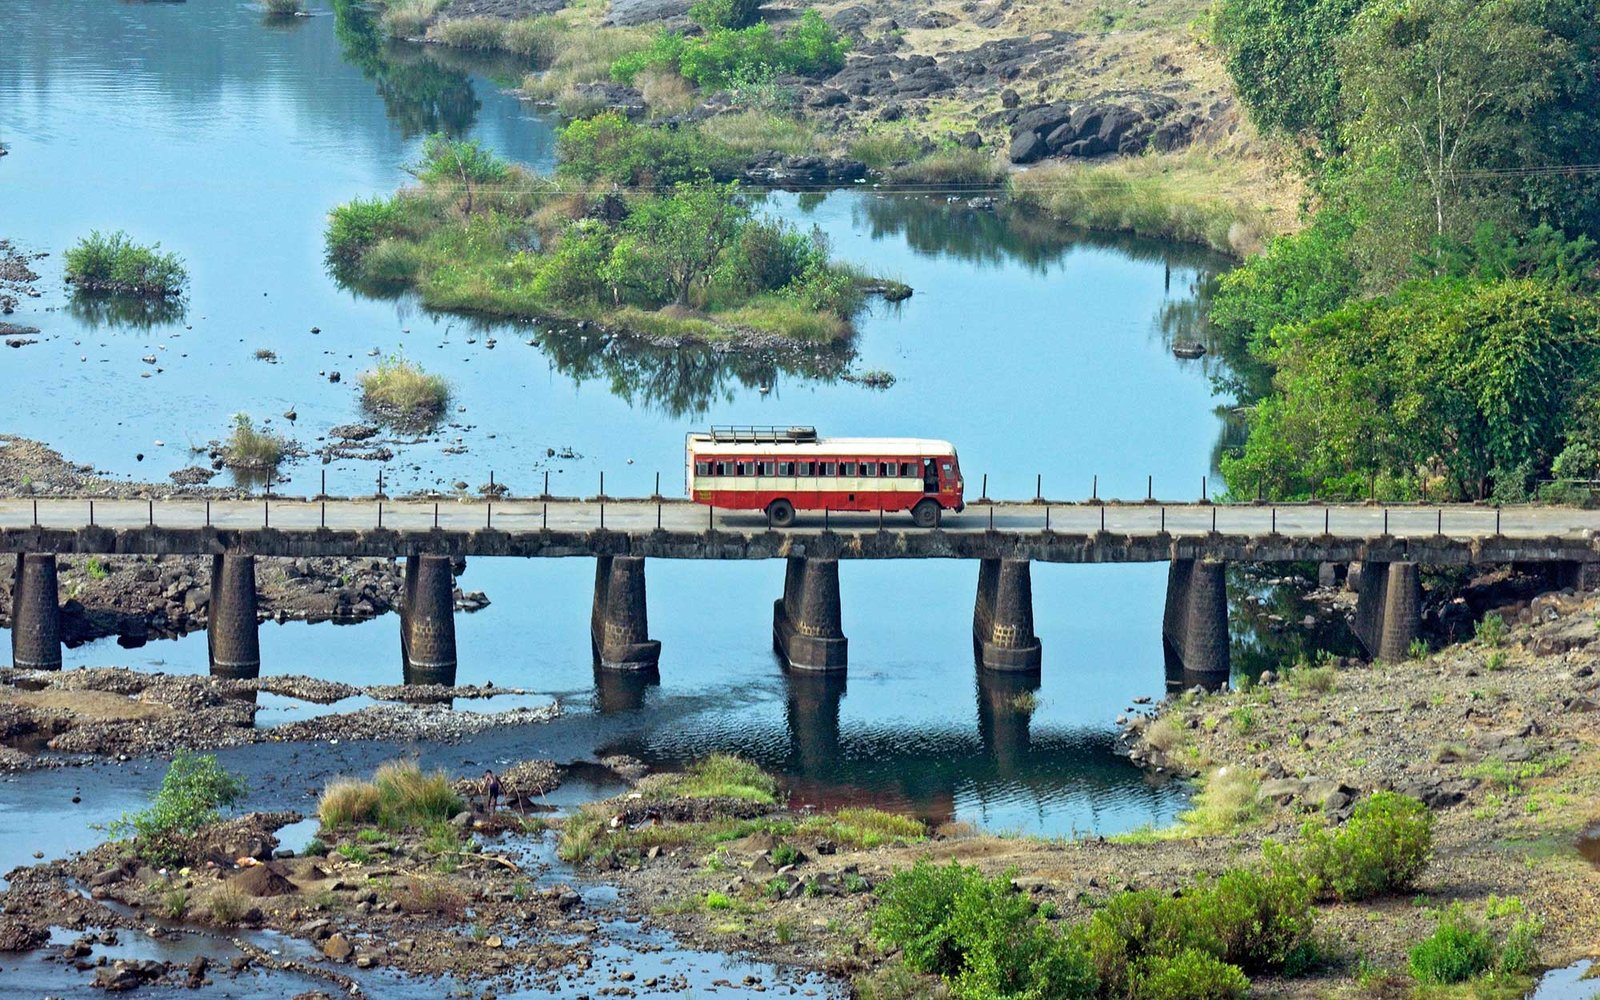 Bus crossing a bridge on chorna river, Bombay, Mumbai, Maharashtra, India